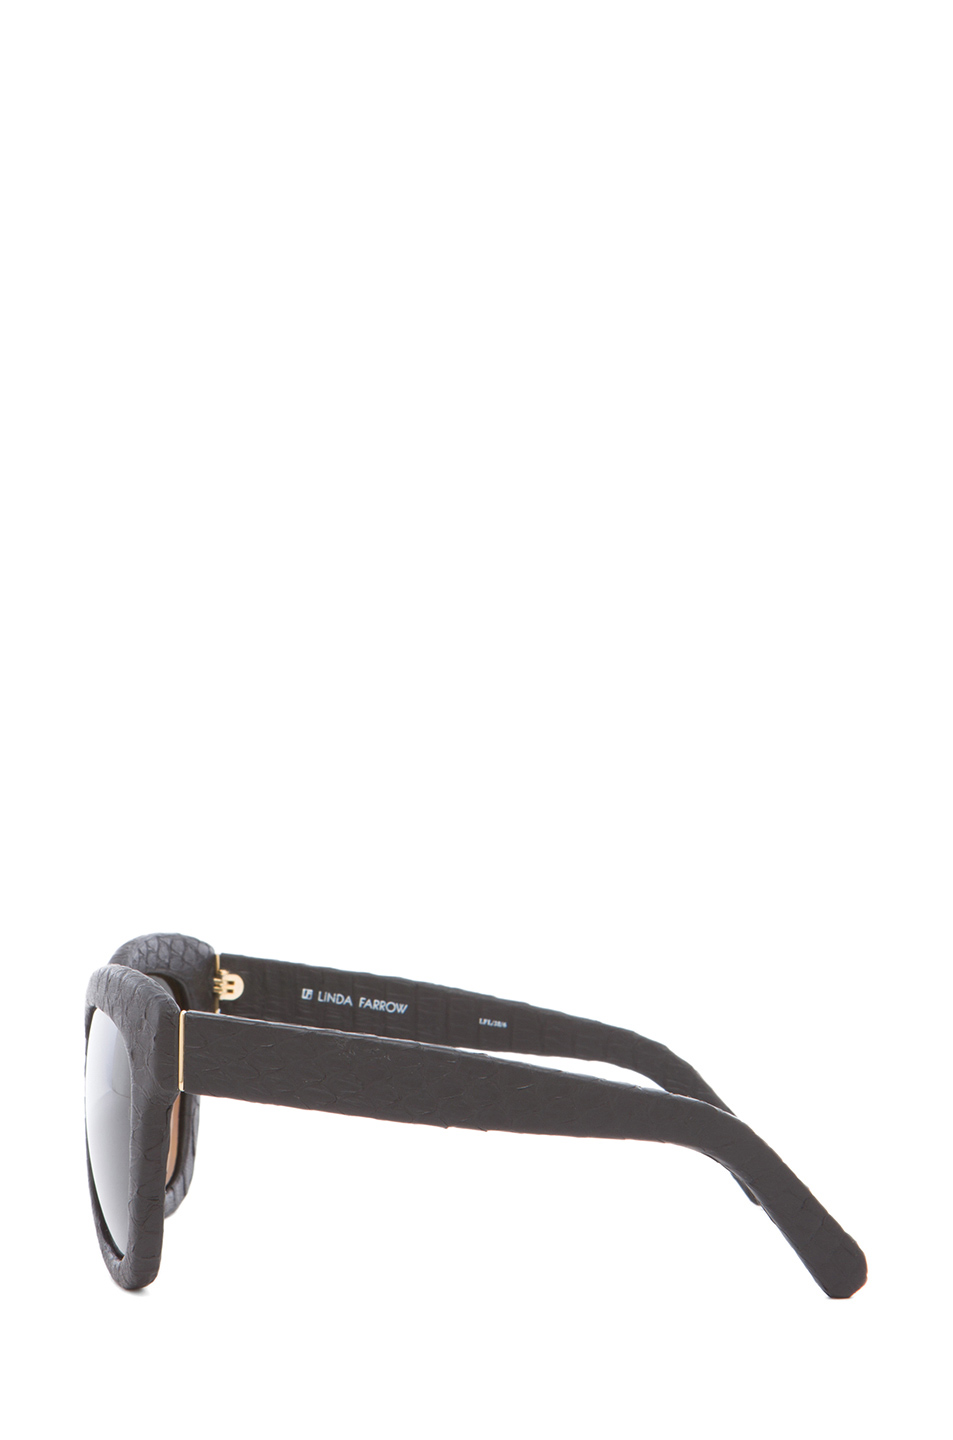 Linda Farrow|Curved Square Polarized Sunglasses in Black Snakeskin